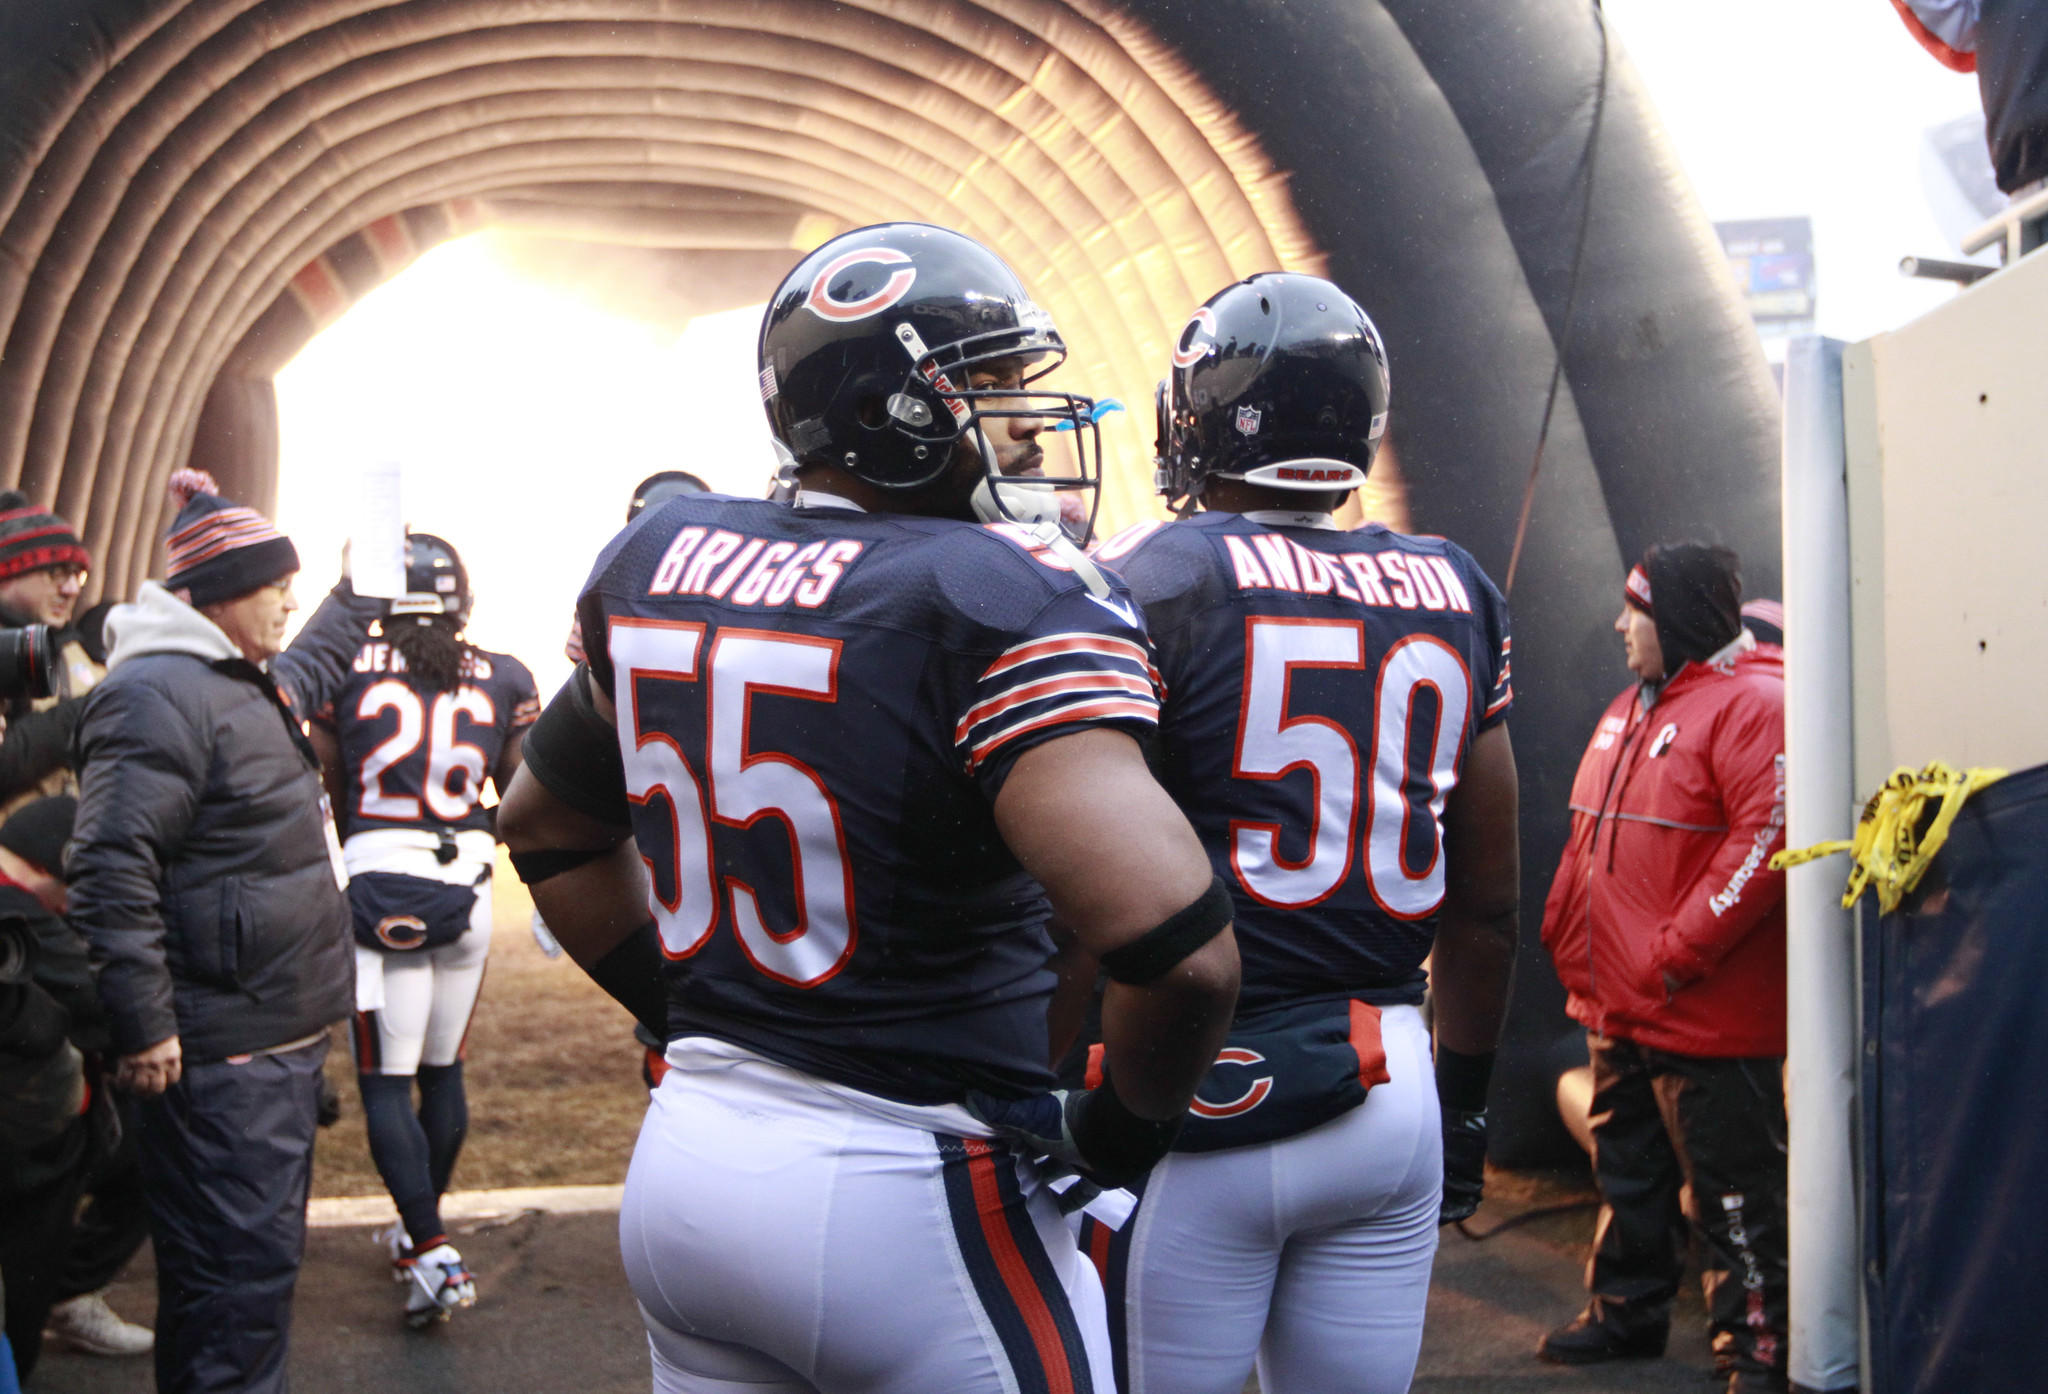 Chicago Bears outside linebacker Lance Briggs (55) before being introduced, before the start of the game against the Green Bay Packers at Soldier Field on Sunday Dec. 29, 2013.